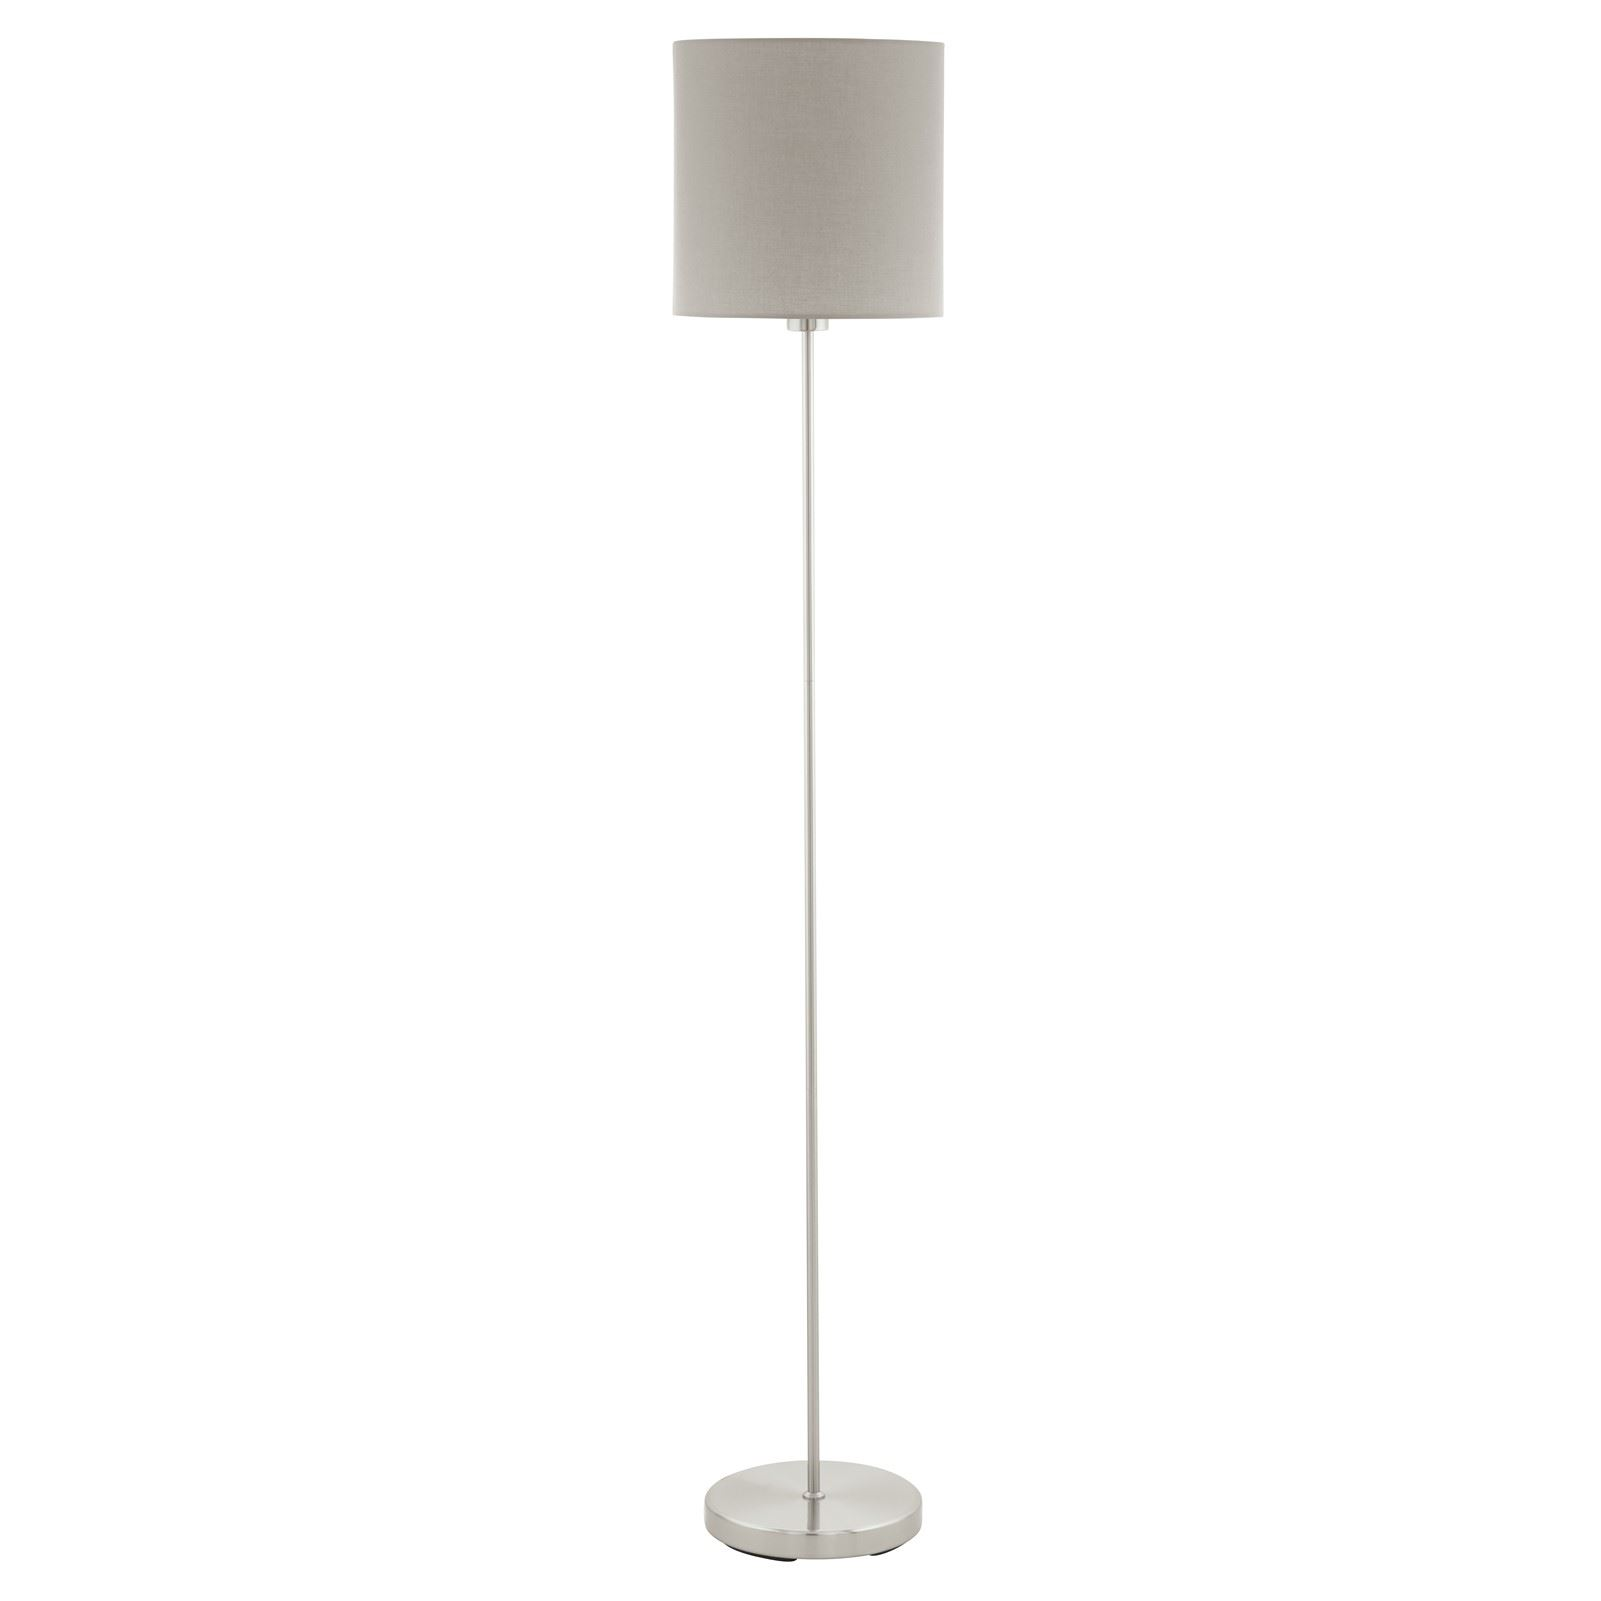 Pasteri Satin Nickel Floor Lamp Taupe Shade With Foot-Switch